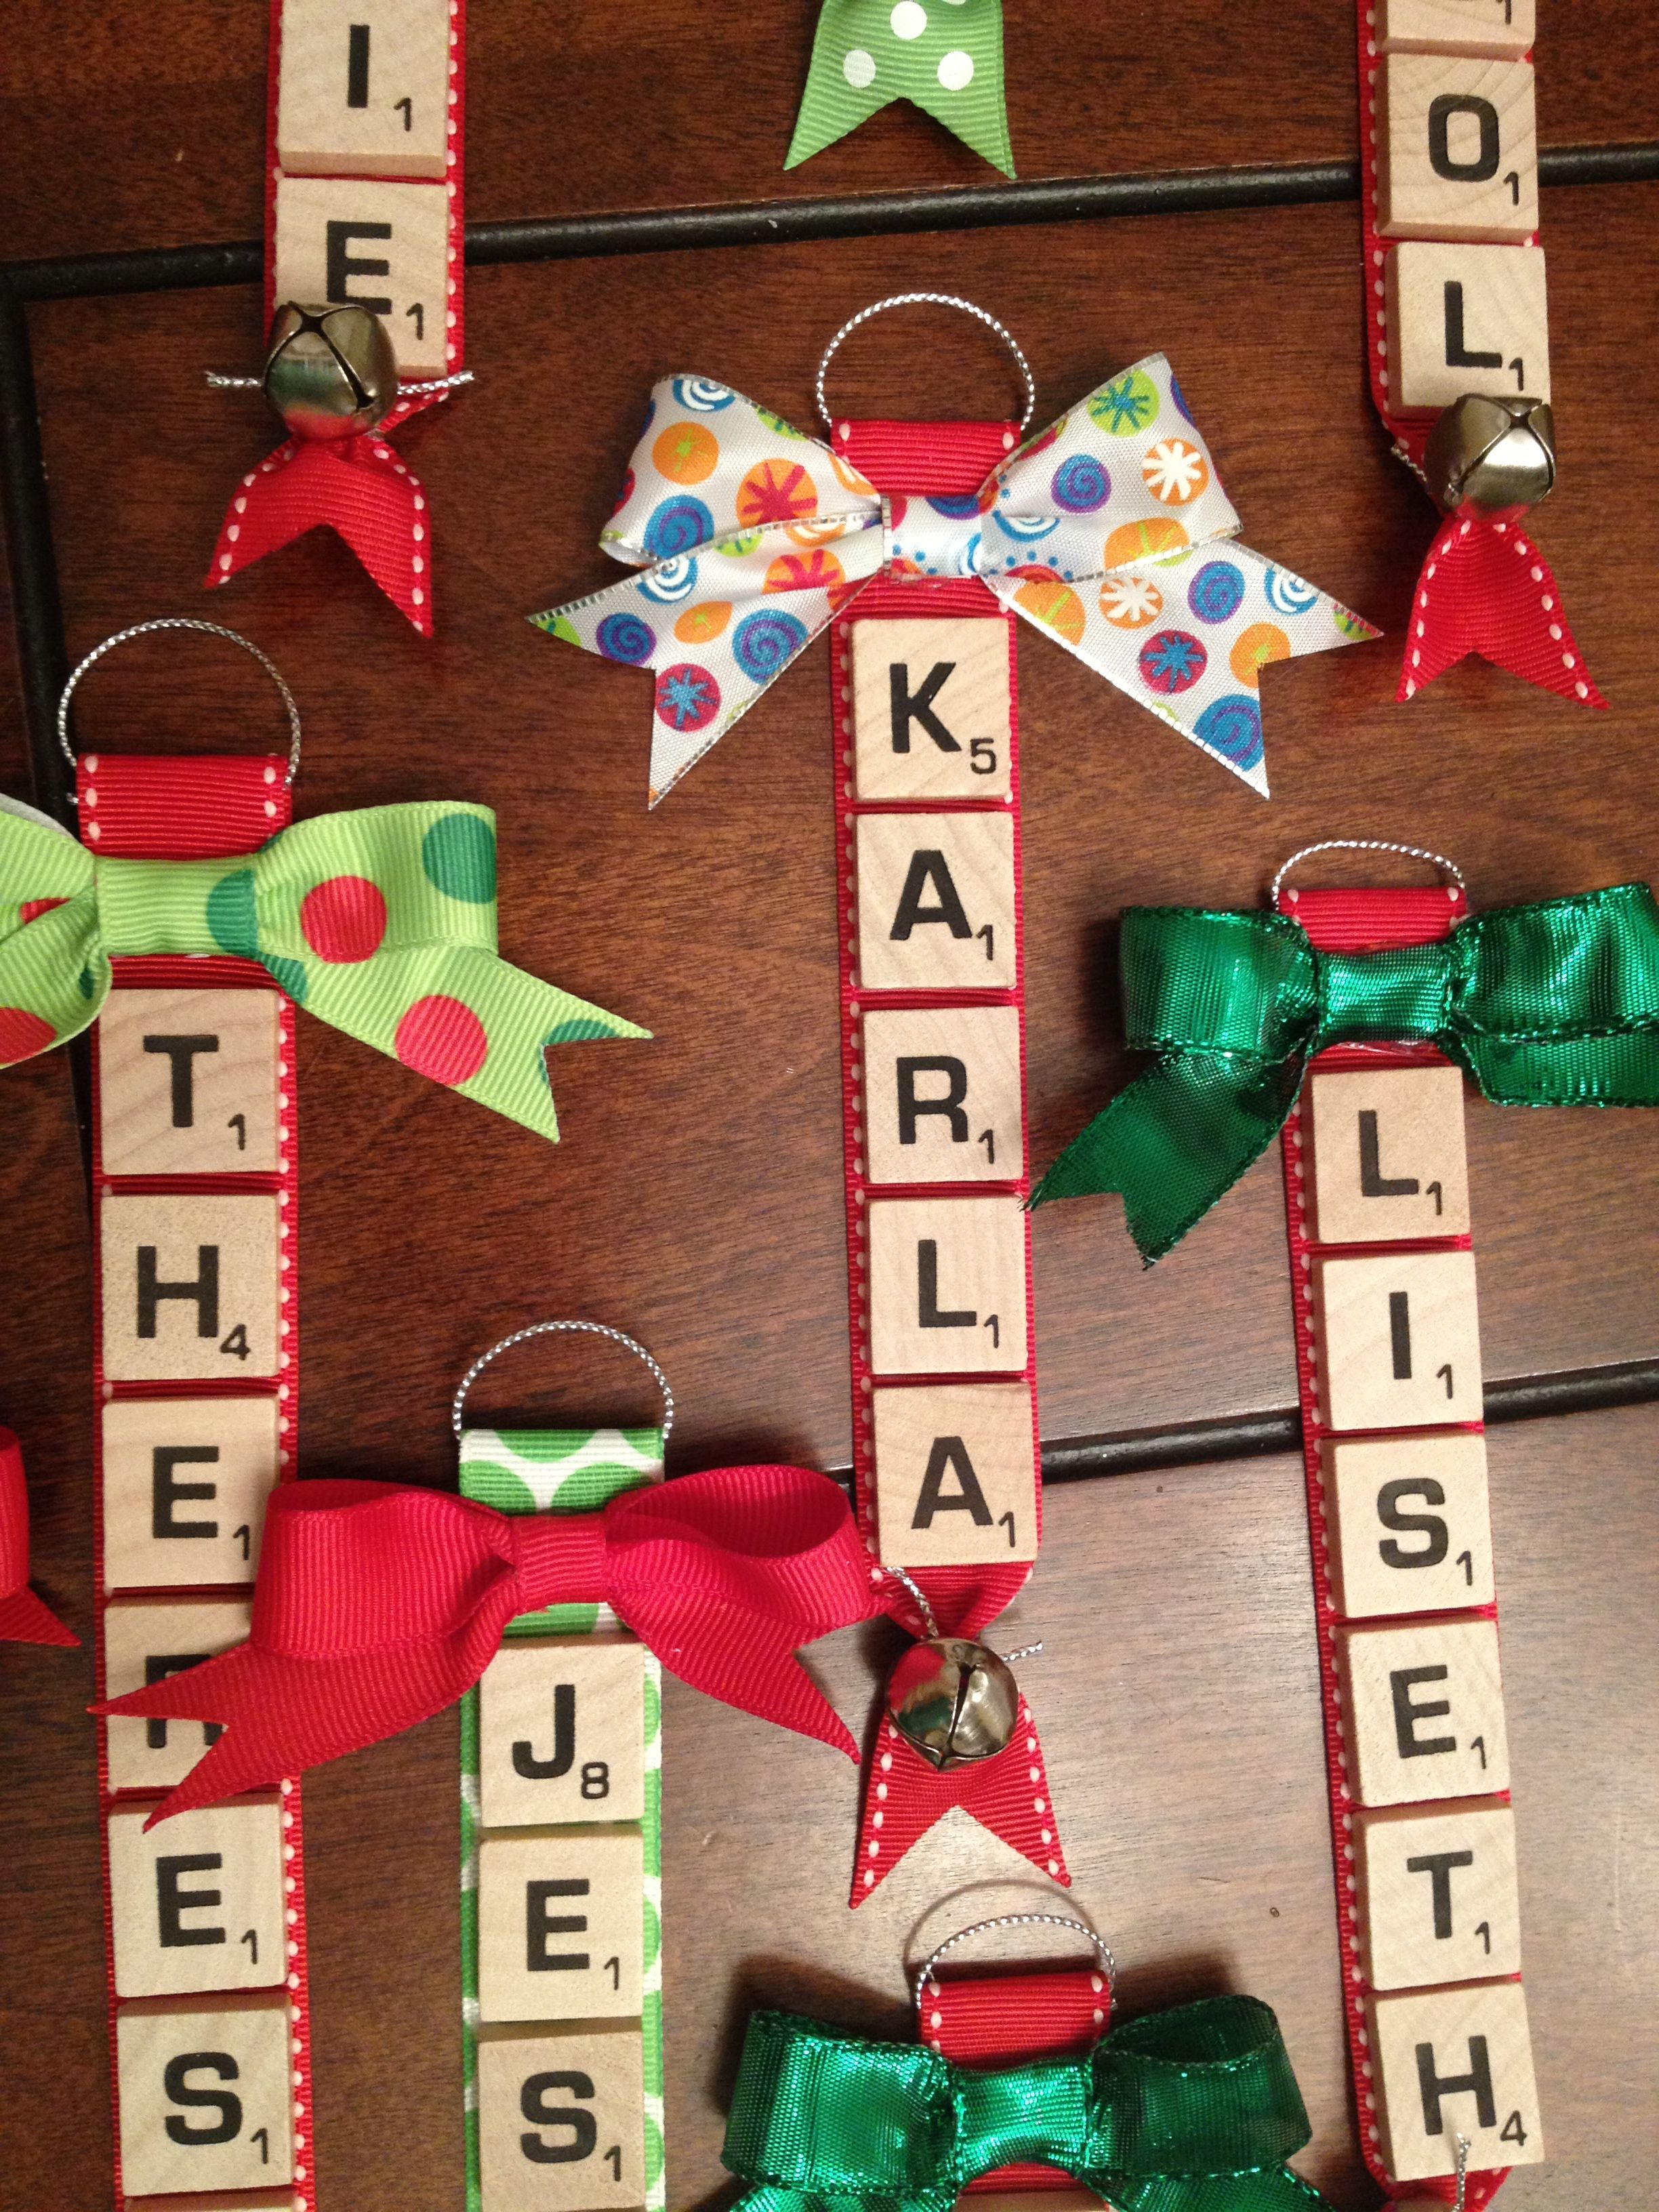 Tile Decorations Impressive Personalized Scrabble Tile Ornaments With Bells And Bows Decorating Design